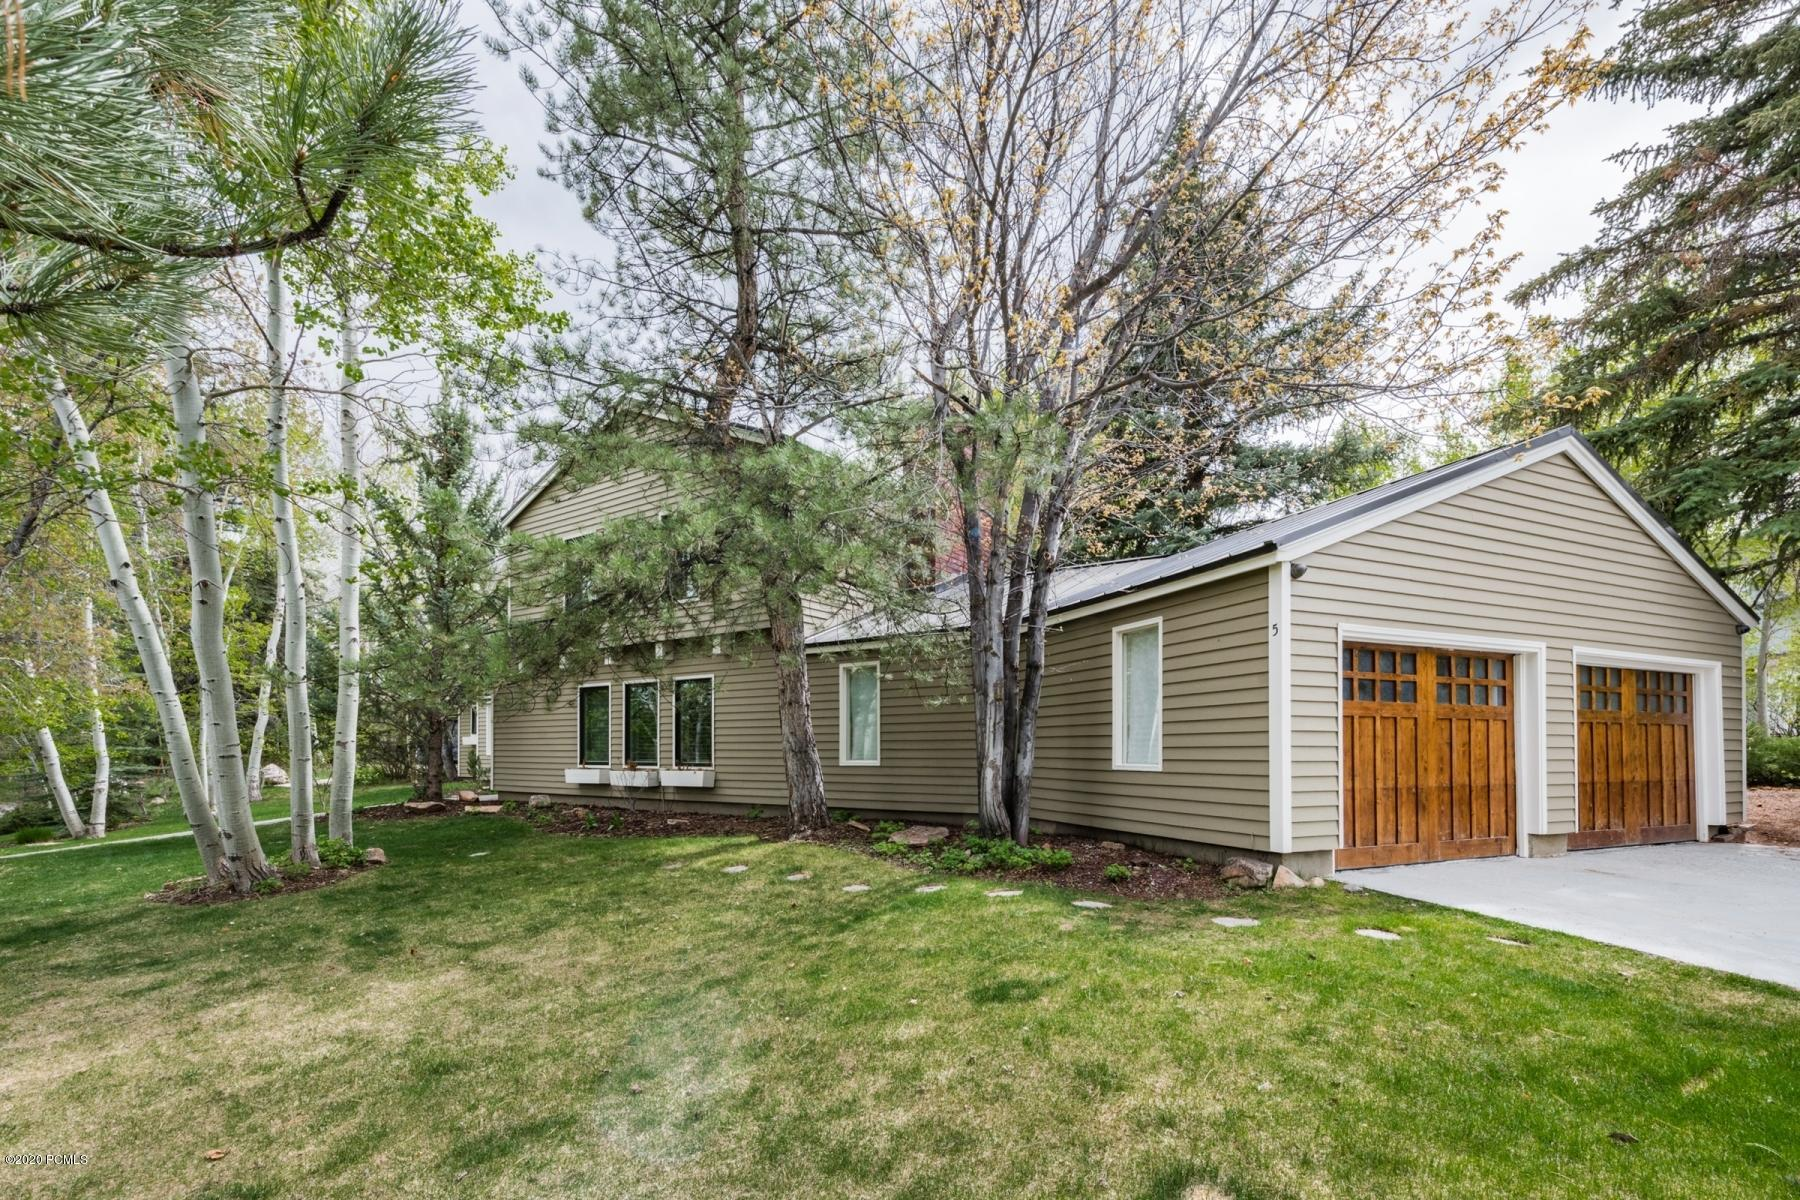 5 Prospector Drive, Park City, Utah 84060, 5 Bedrooms Bedrooms, ,4 BathroomsBathrooms,Single Family,For Sale,Prospector,20190109112430415765000000